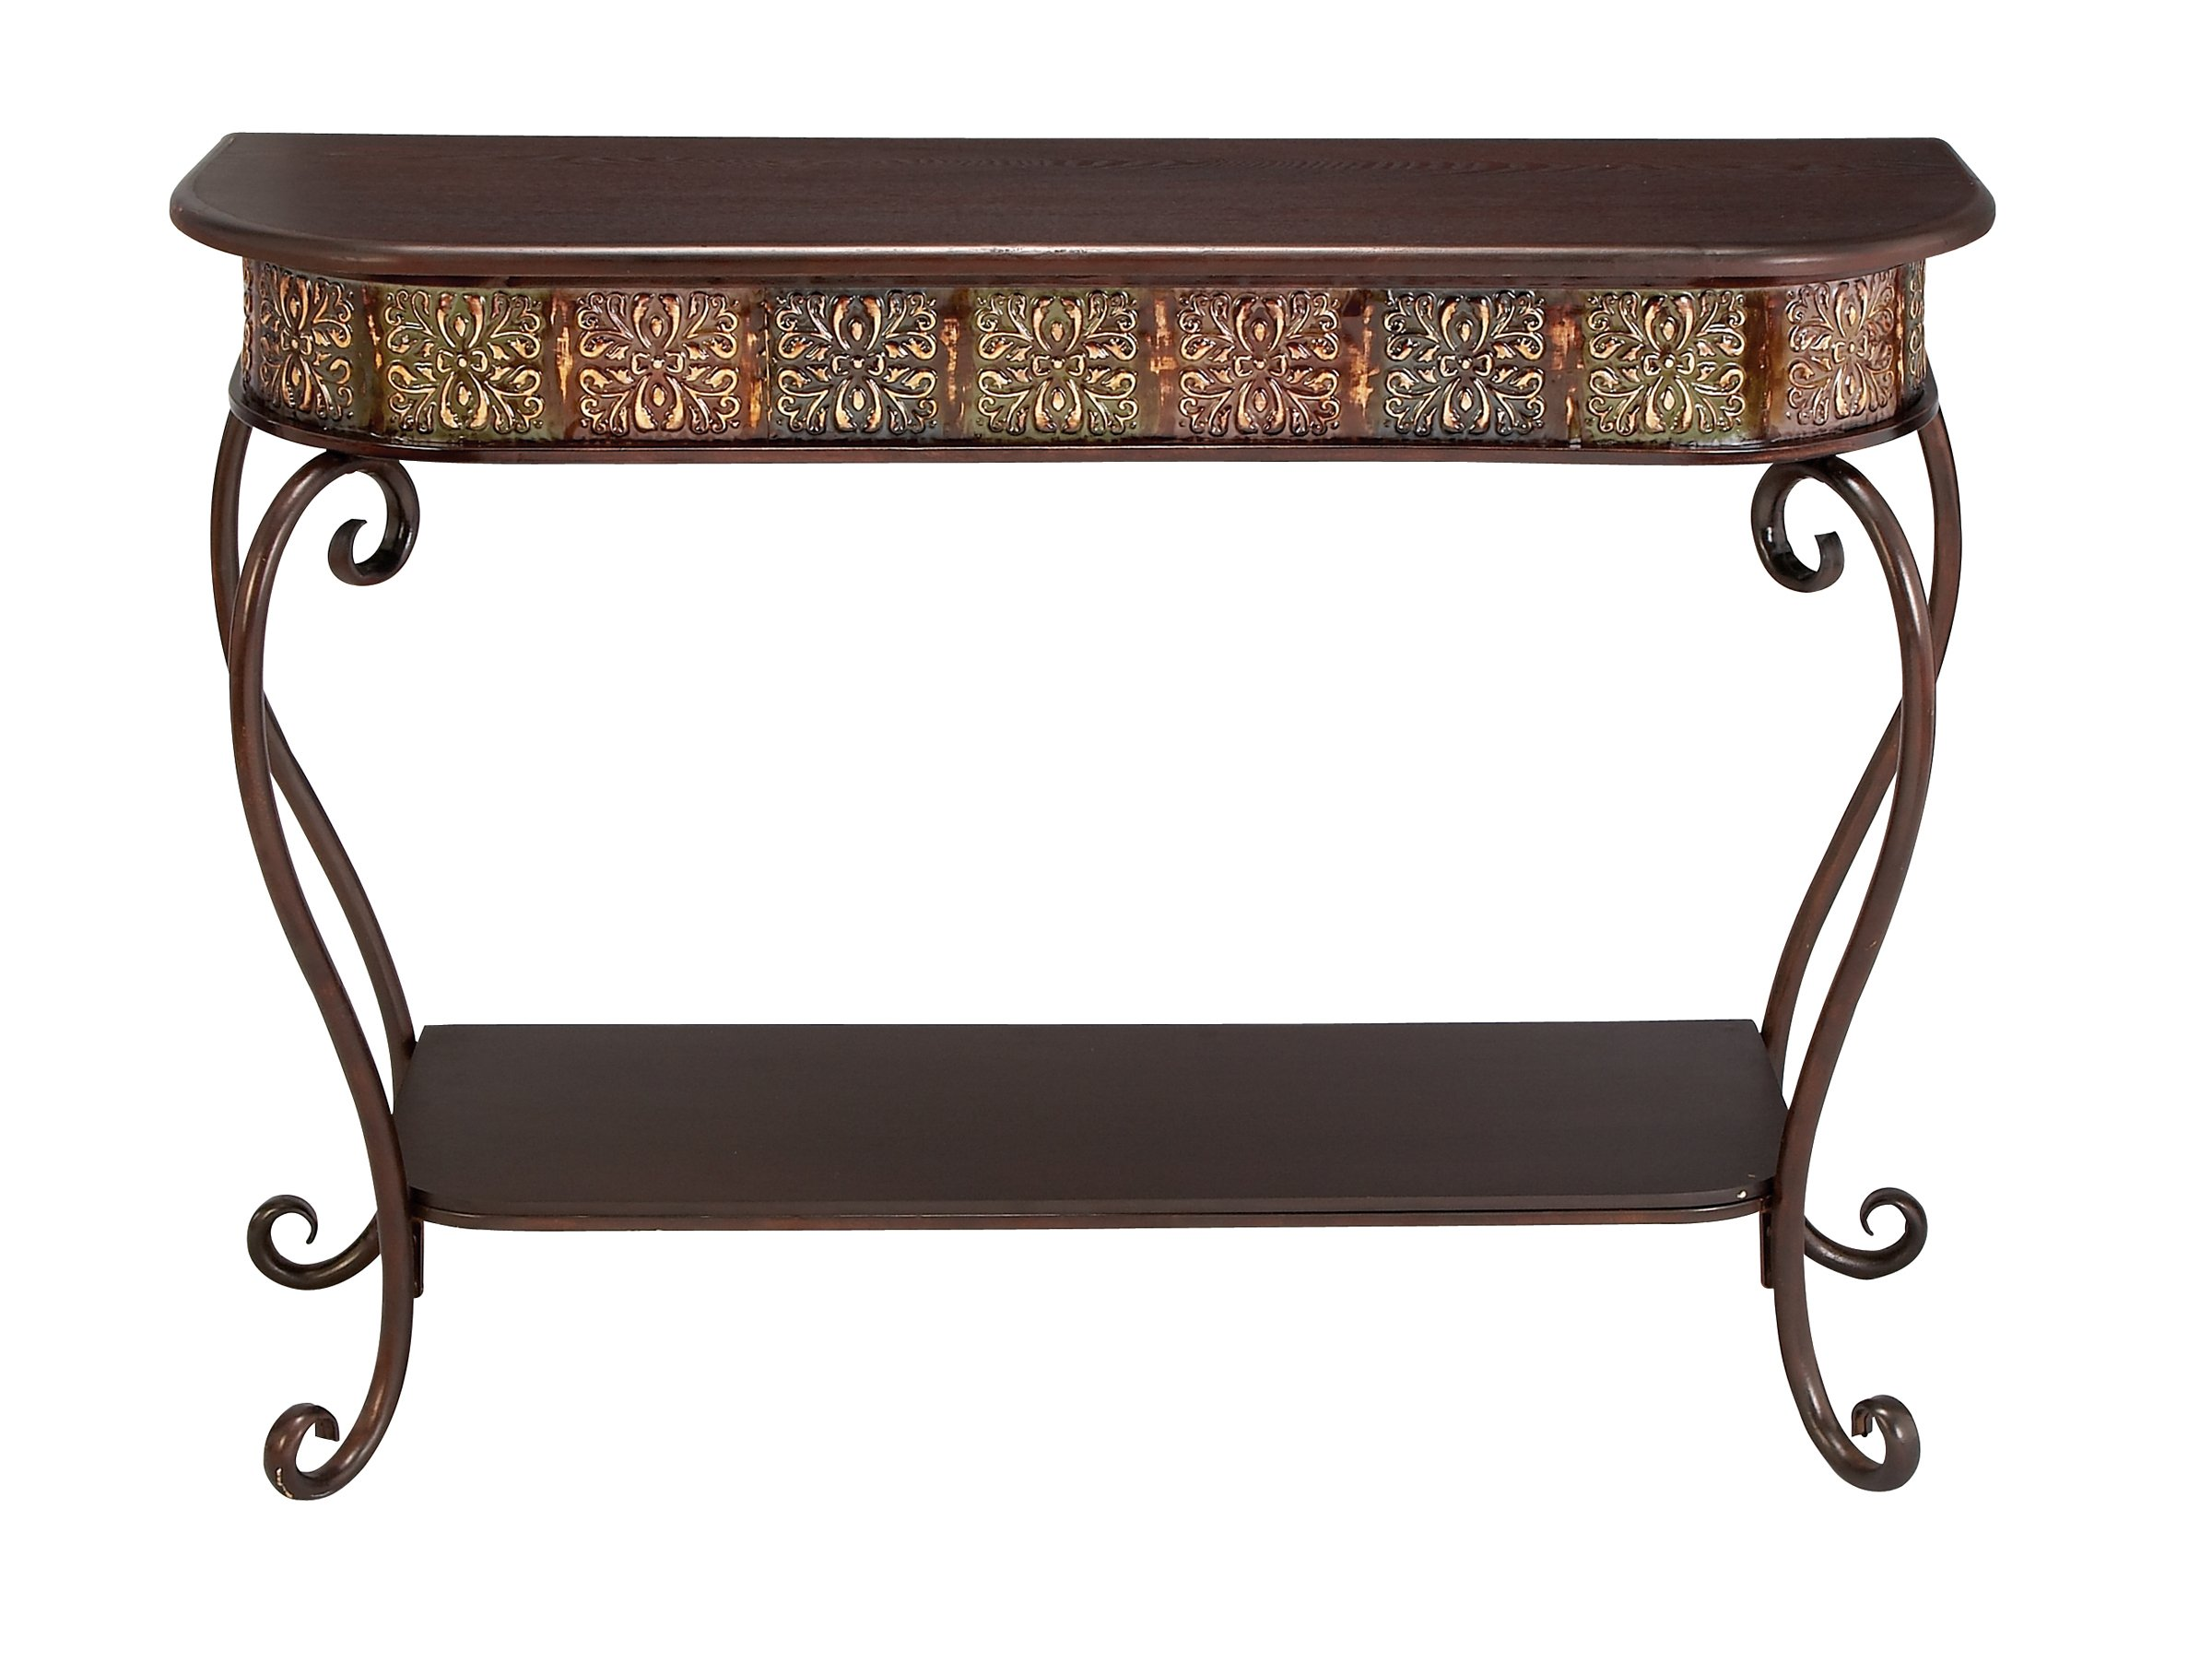 Deco 79 74362 Metal Wood Console Table, 32'' x 43''